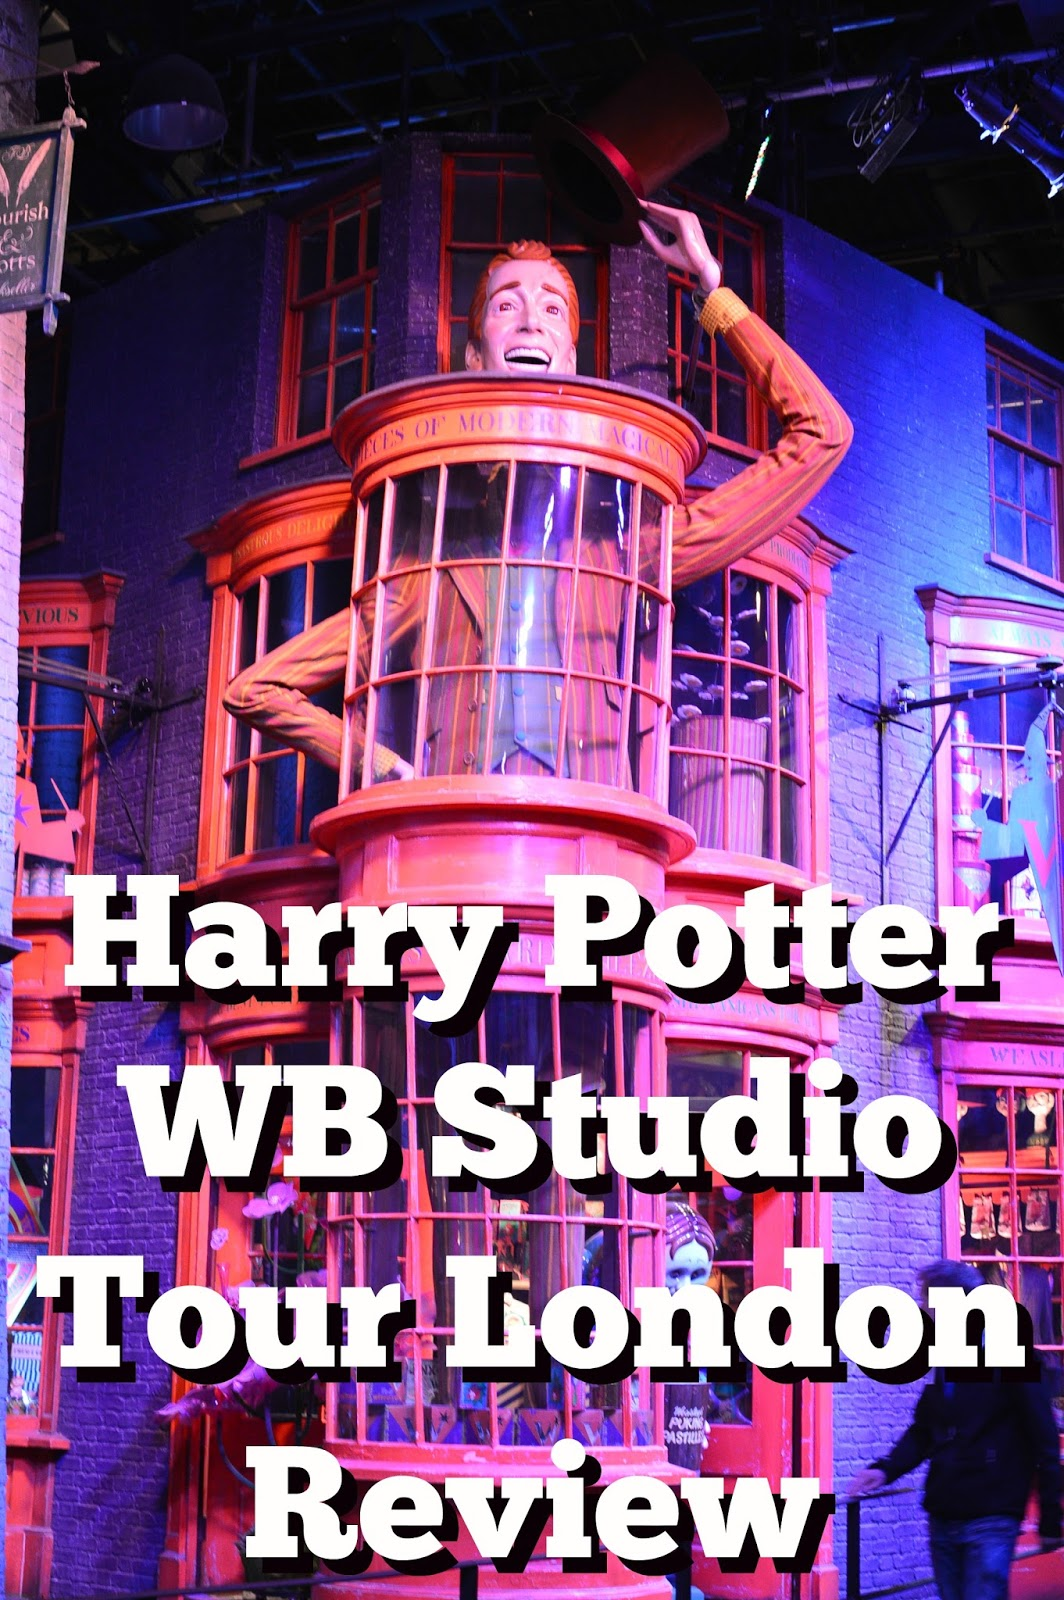 harry potter wb studio tour london review | review of harry potter studio tour in london | is the harry potter tour worth it | review of the harry potter studio tour in london | the making of harry potter wb studio tour review |